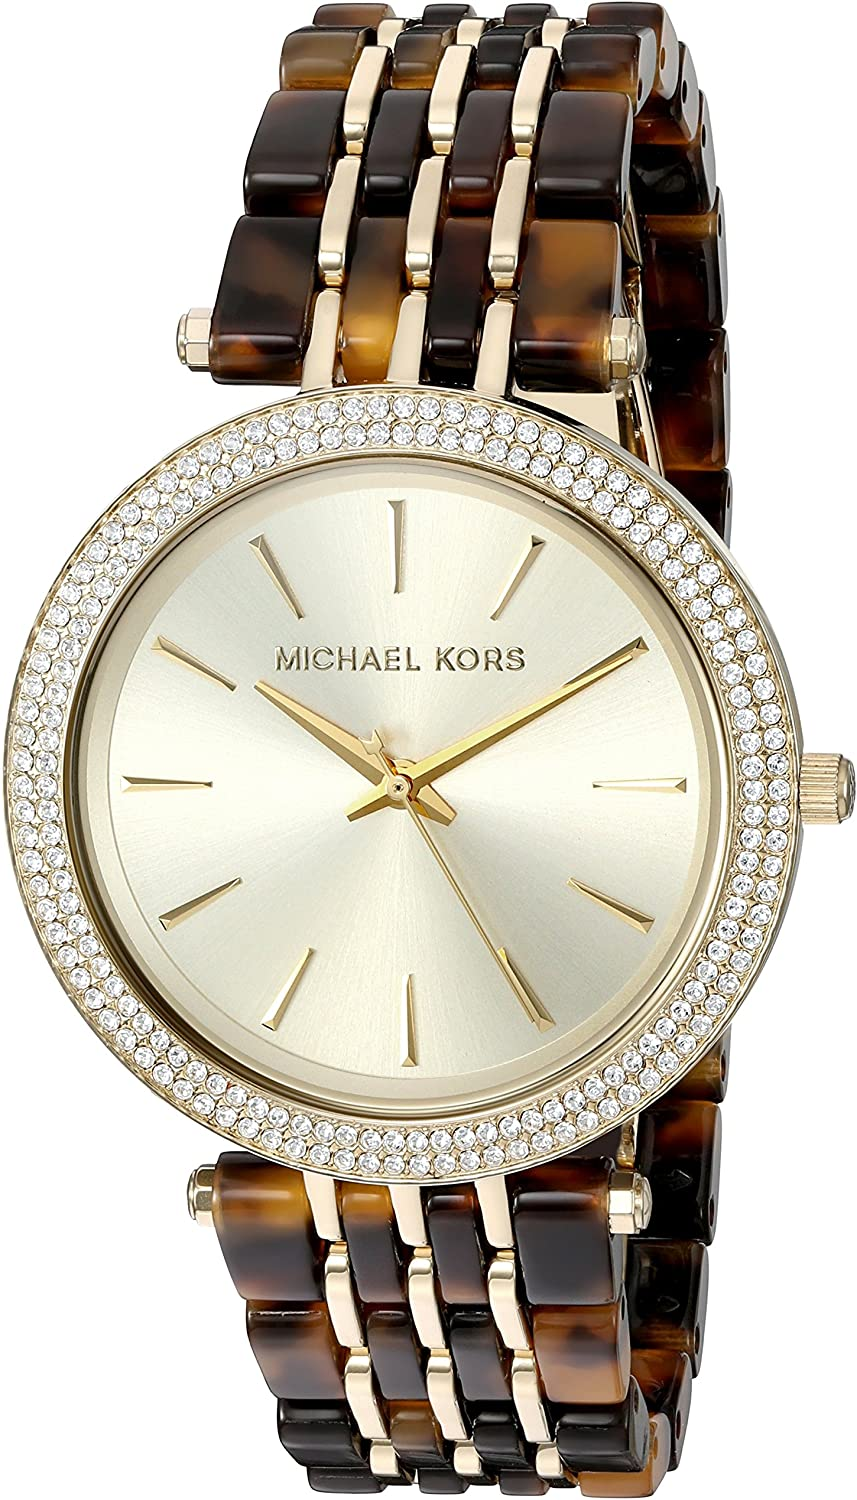 Michael Kors Women s Darci Gold-Tone Watch MK4326